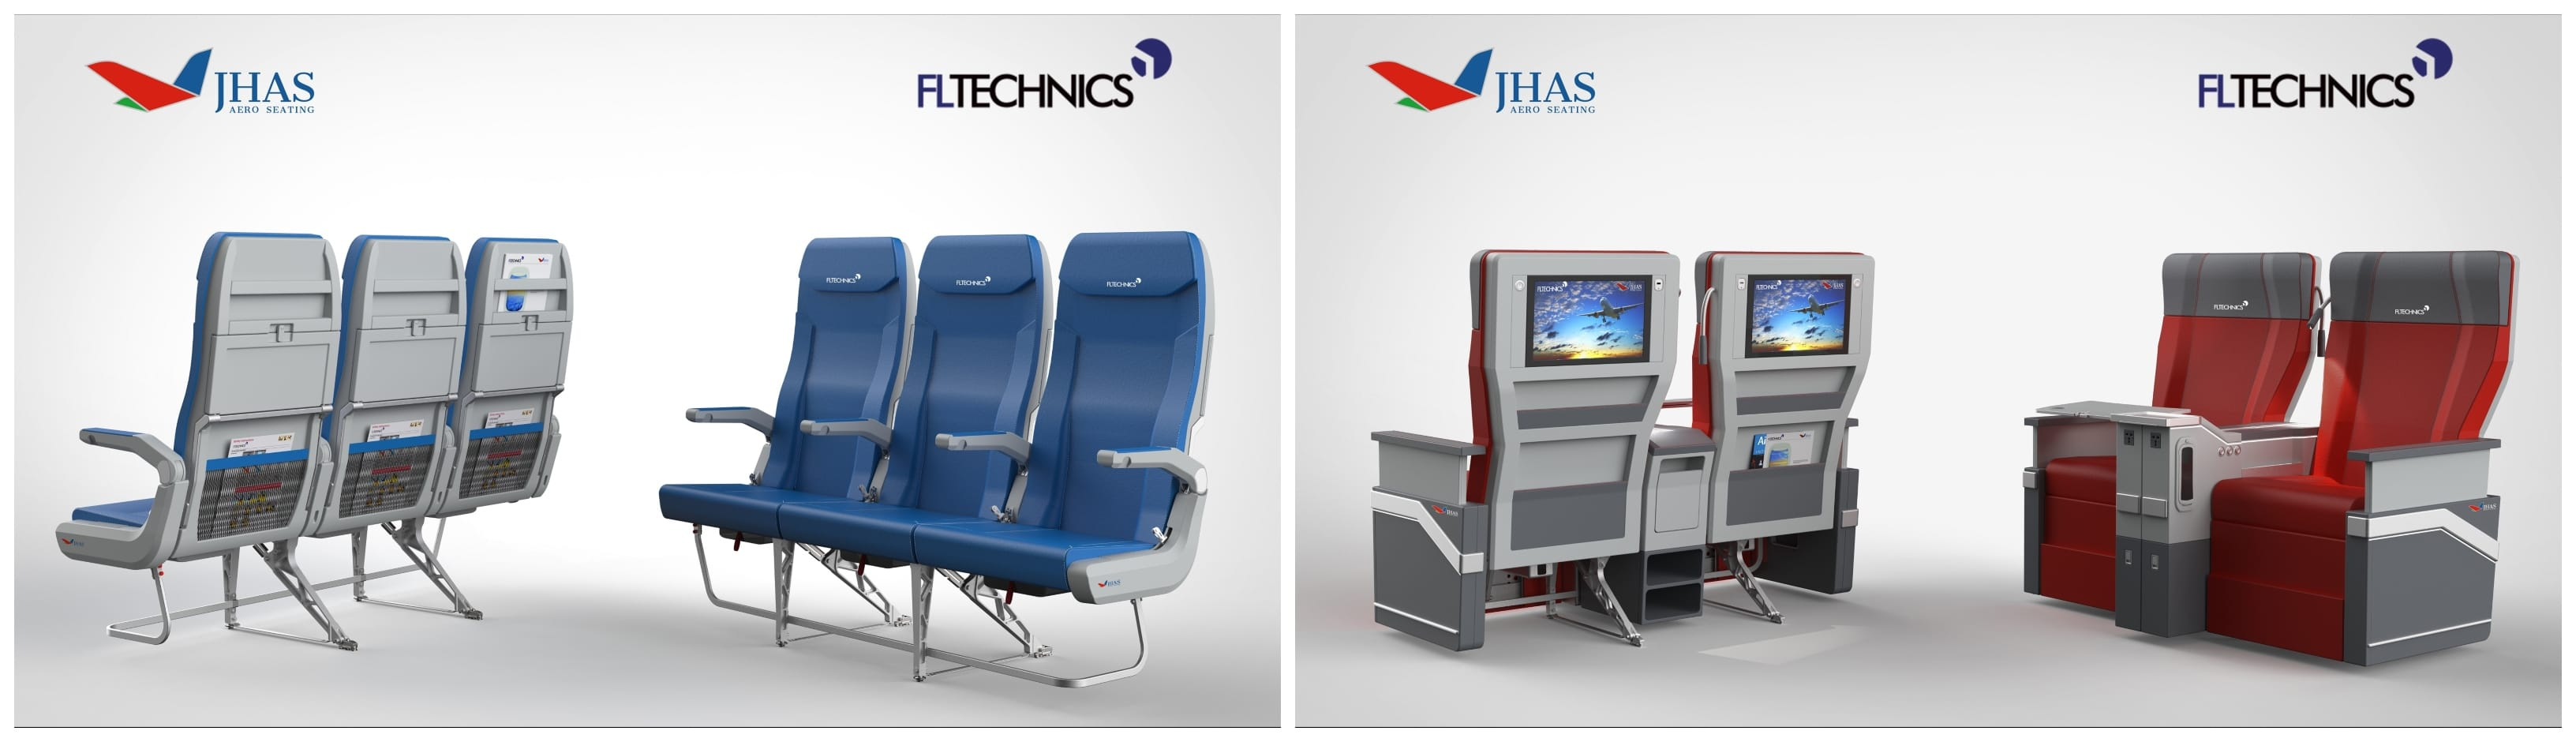 FL Technics, a global provider of integrated aircraft maintenance, repair and overhaul services announces an exclusive partnership with JHAS, an Italian aircraft seating and interior company.   \u201cJHAS provides different, tailor-made solutions for aircraft interiors. This is not usual in aviation industry as we are looking for a breakthrough out of standardized seating environment. We are glad that JHAS chose us as their exclusive partners as this is a great opportunity for FL Technics also, giving us an upper-hand in our services,\u201d says Zilvinas Lapinskas, CEO at FL Technics.  Since the beginning of this cooperation, FL Technics will be an official representative of JHAS in Europe, Africa, Middle East, CIS and Russian regions, as well as Asia Pacific region. FL Technics will act as exclusive seller and promoter of economy, business and first class seats so to cover all the typology of products for aircraft cabin interiors classes.   \u201cWe are very proud to be a partner of one of the most energetic players in MRO market. It\u2019s a great opportunity to introduce unique products for each client and to show our capacity through expertise in the market where every need of our customers will be reached, thanks to the synergy with FL Technics,\u201d says Mario Schisa, CEO at JHAS.   FL Technics continued their global expansion and started implementing its strategic goals by amplifying their operations in Asia Pacific region and China. Just recently, FL Technics created a joint-venture in China, opened a warehouse in Singapore and expanded their MRO activities in Indonesia by receiving an FAA Part-145 certificate for the subsidiary FL Technics Indonesia. The deal with JHAS allows FL Technics to suggest tailor-made solutions for present and future clients in Asia Pacific region and China.  FL Technics is a global provider of aircraft maintenance, repair and overhaul (MRO) services. Company specializes in base & line maintenance, spare parts & component support, engine, APU & LG management, full aircraft engineering, technical training. FL Technics is an EASA Part-145, Part-M, Part-147, Part-21 and FAA 145 (Indonesia) certified company. FL Technics is a member of the Avia Solutions Group family.  JHAS is a design and production company of seats and interiors in aviation. The company\u2019s headquarters with Design, Style, Certification and R&D departments are located in Italy. Most advanced instruments for analysis and simulations (FEM, 3D virtual simulator) are available for the customers. In China the company has a prototype & production assembly site of 90.000 sq.m. JHAS territorial presence in the three sites guarantees support and assistance to customers and OEM all over the world. JHAS is a part of Jiangsu HengSheng Aviation Seats Group.